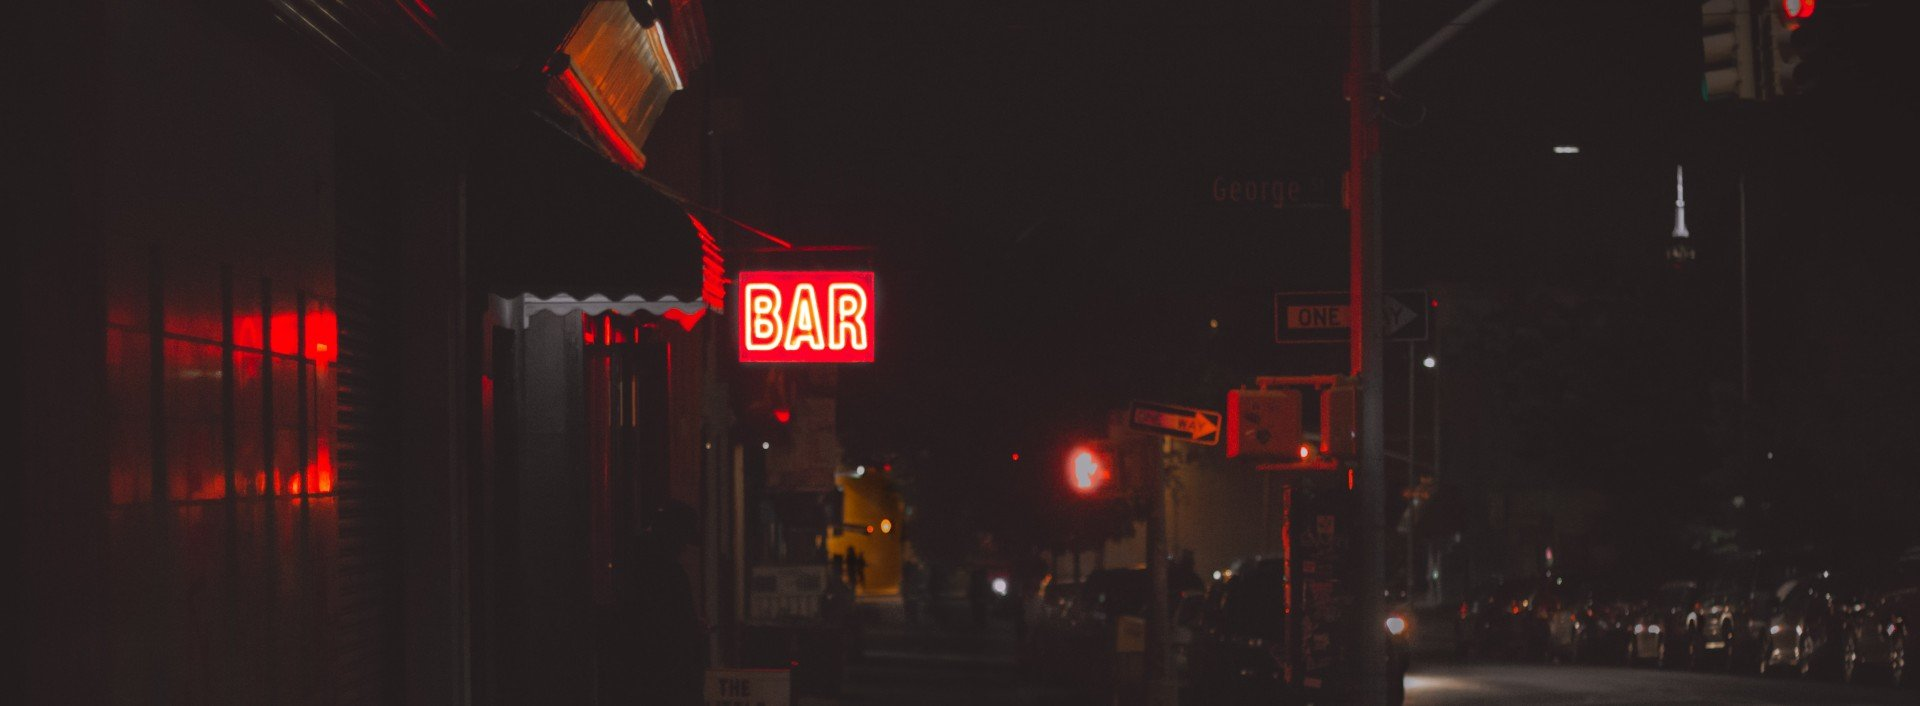 """Bar vocabulary in English: a neon sign reading """"bar"""" is lit up on a street at night."""